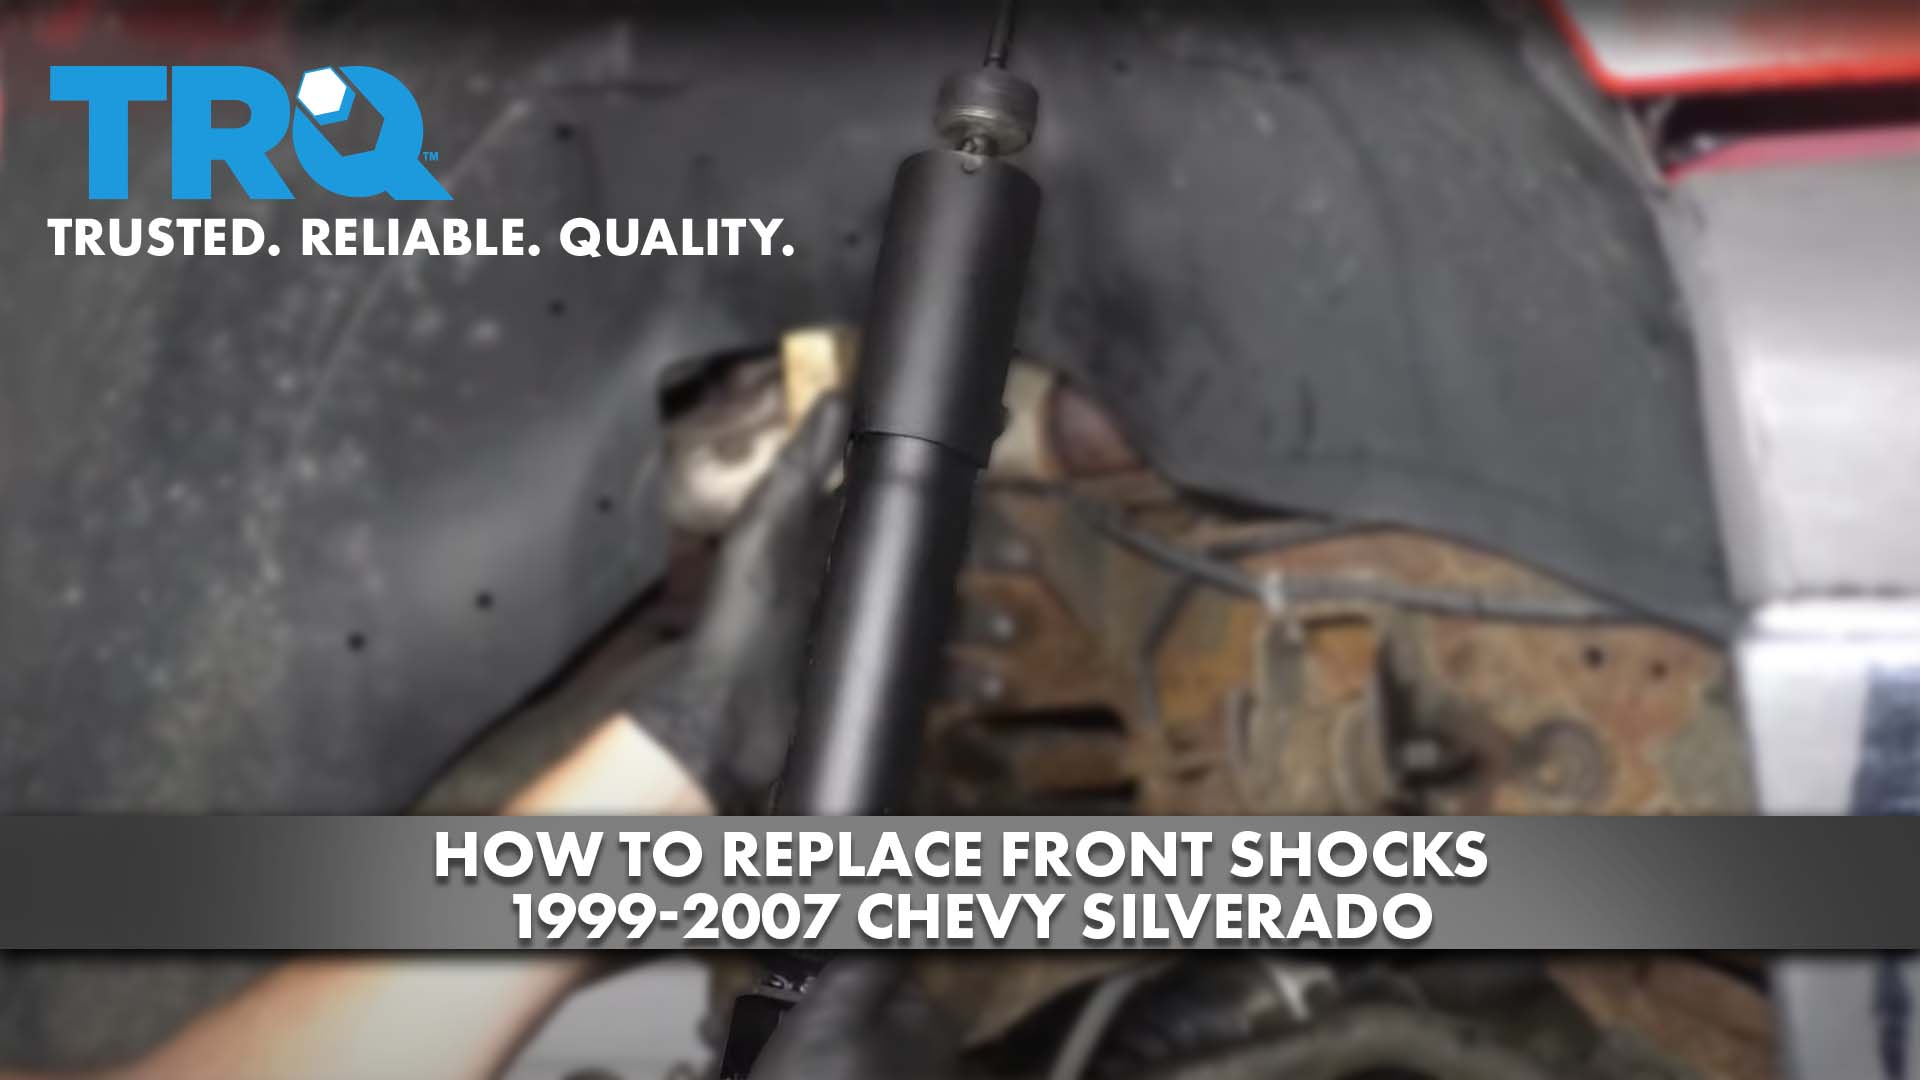 How to Replace Front Shocks 1999-07 Chevy Silverado